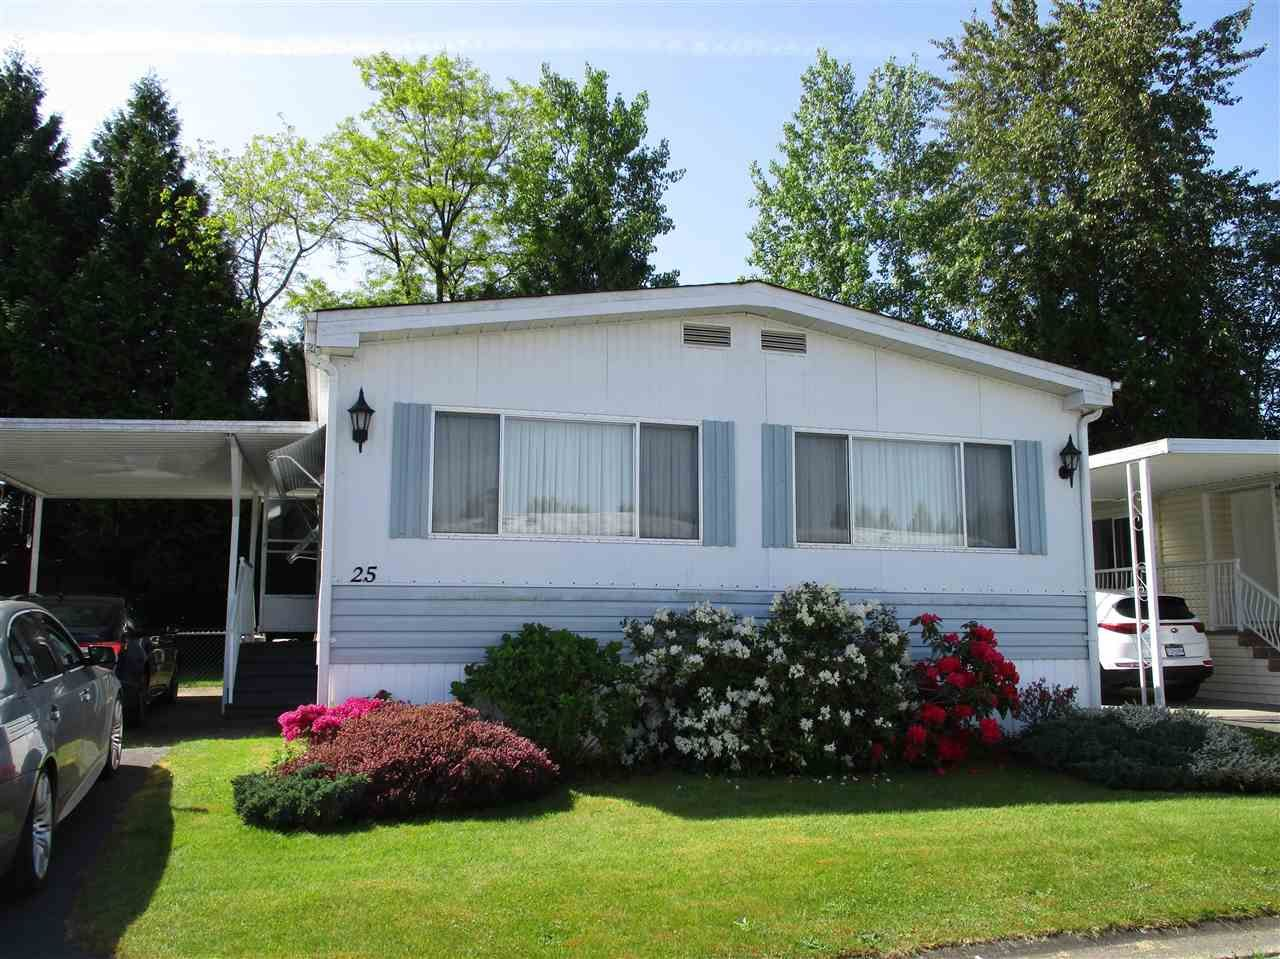 """Main Photo: 25 13507 81 Avenue in Surrey: Queen Mary Park Surrey Manufactured Home for sale in """"Park Boulevard Estates"""" : MLS®# R2583115"""